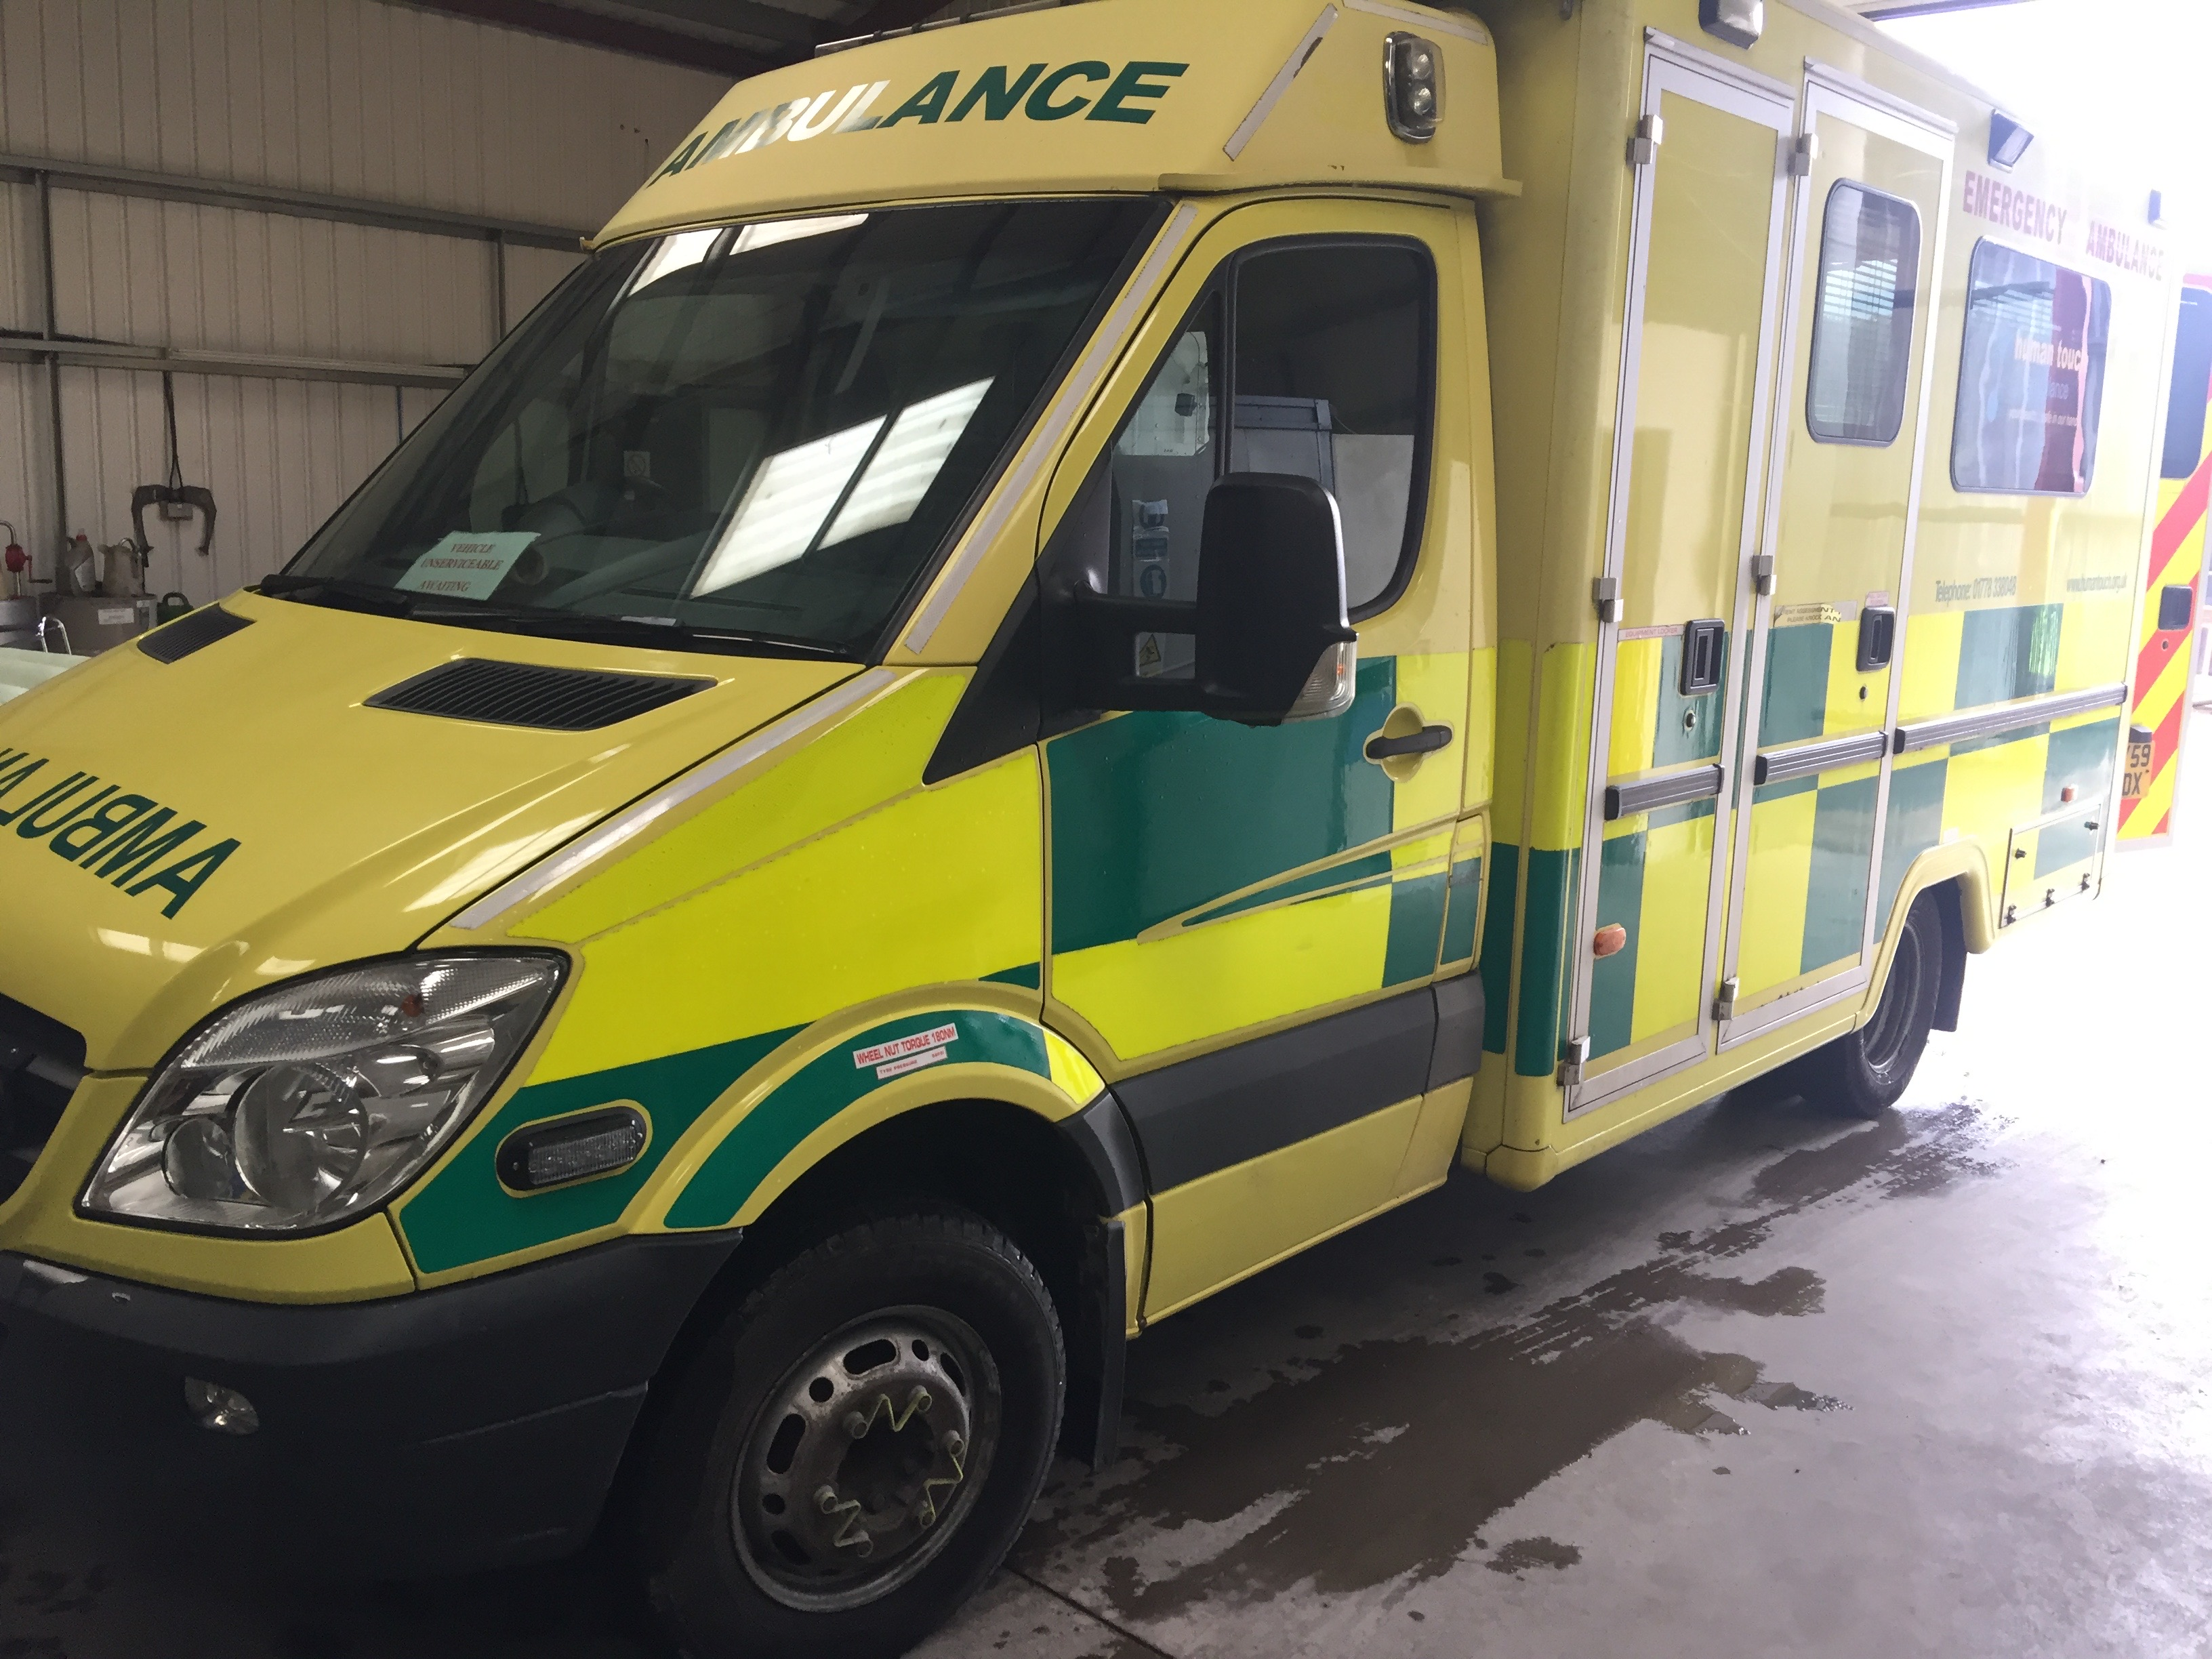 Lot 5 - Mercedes Sprinter wide body HDU ambulance Registration No AY59 BDX, 346,000 recorded miles, date